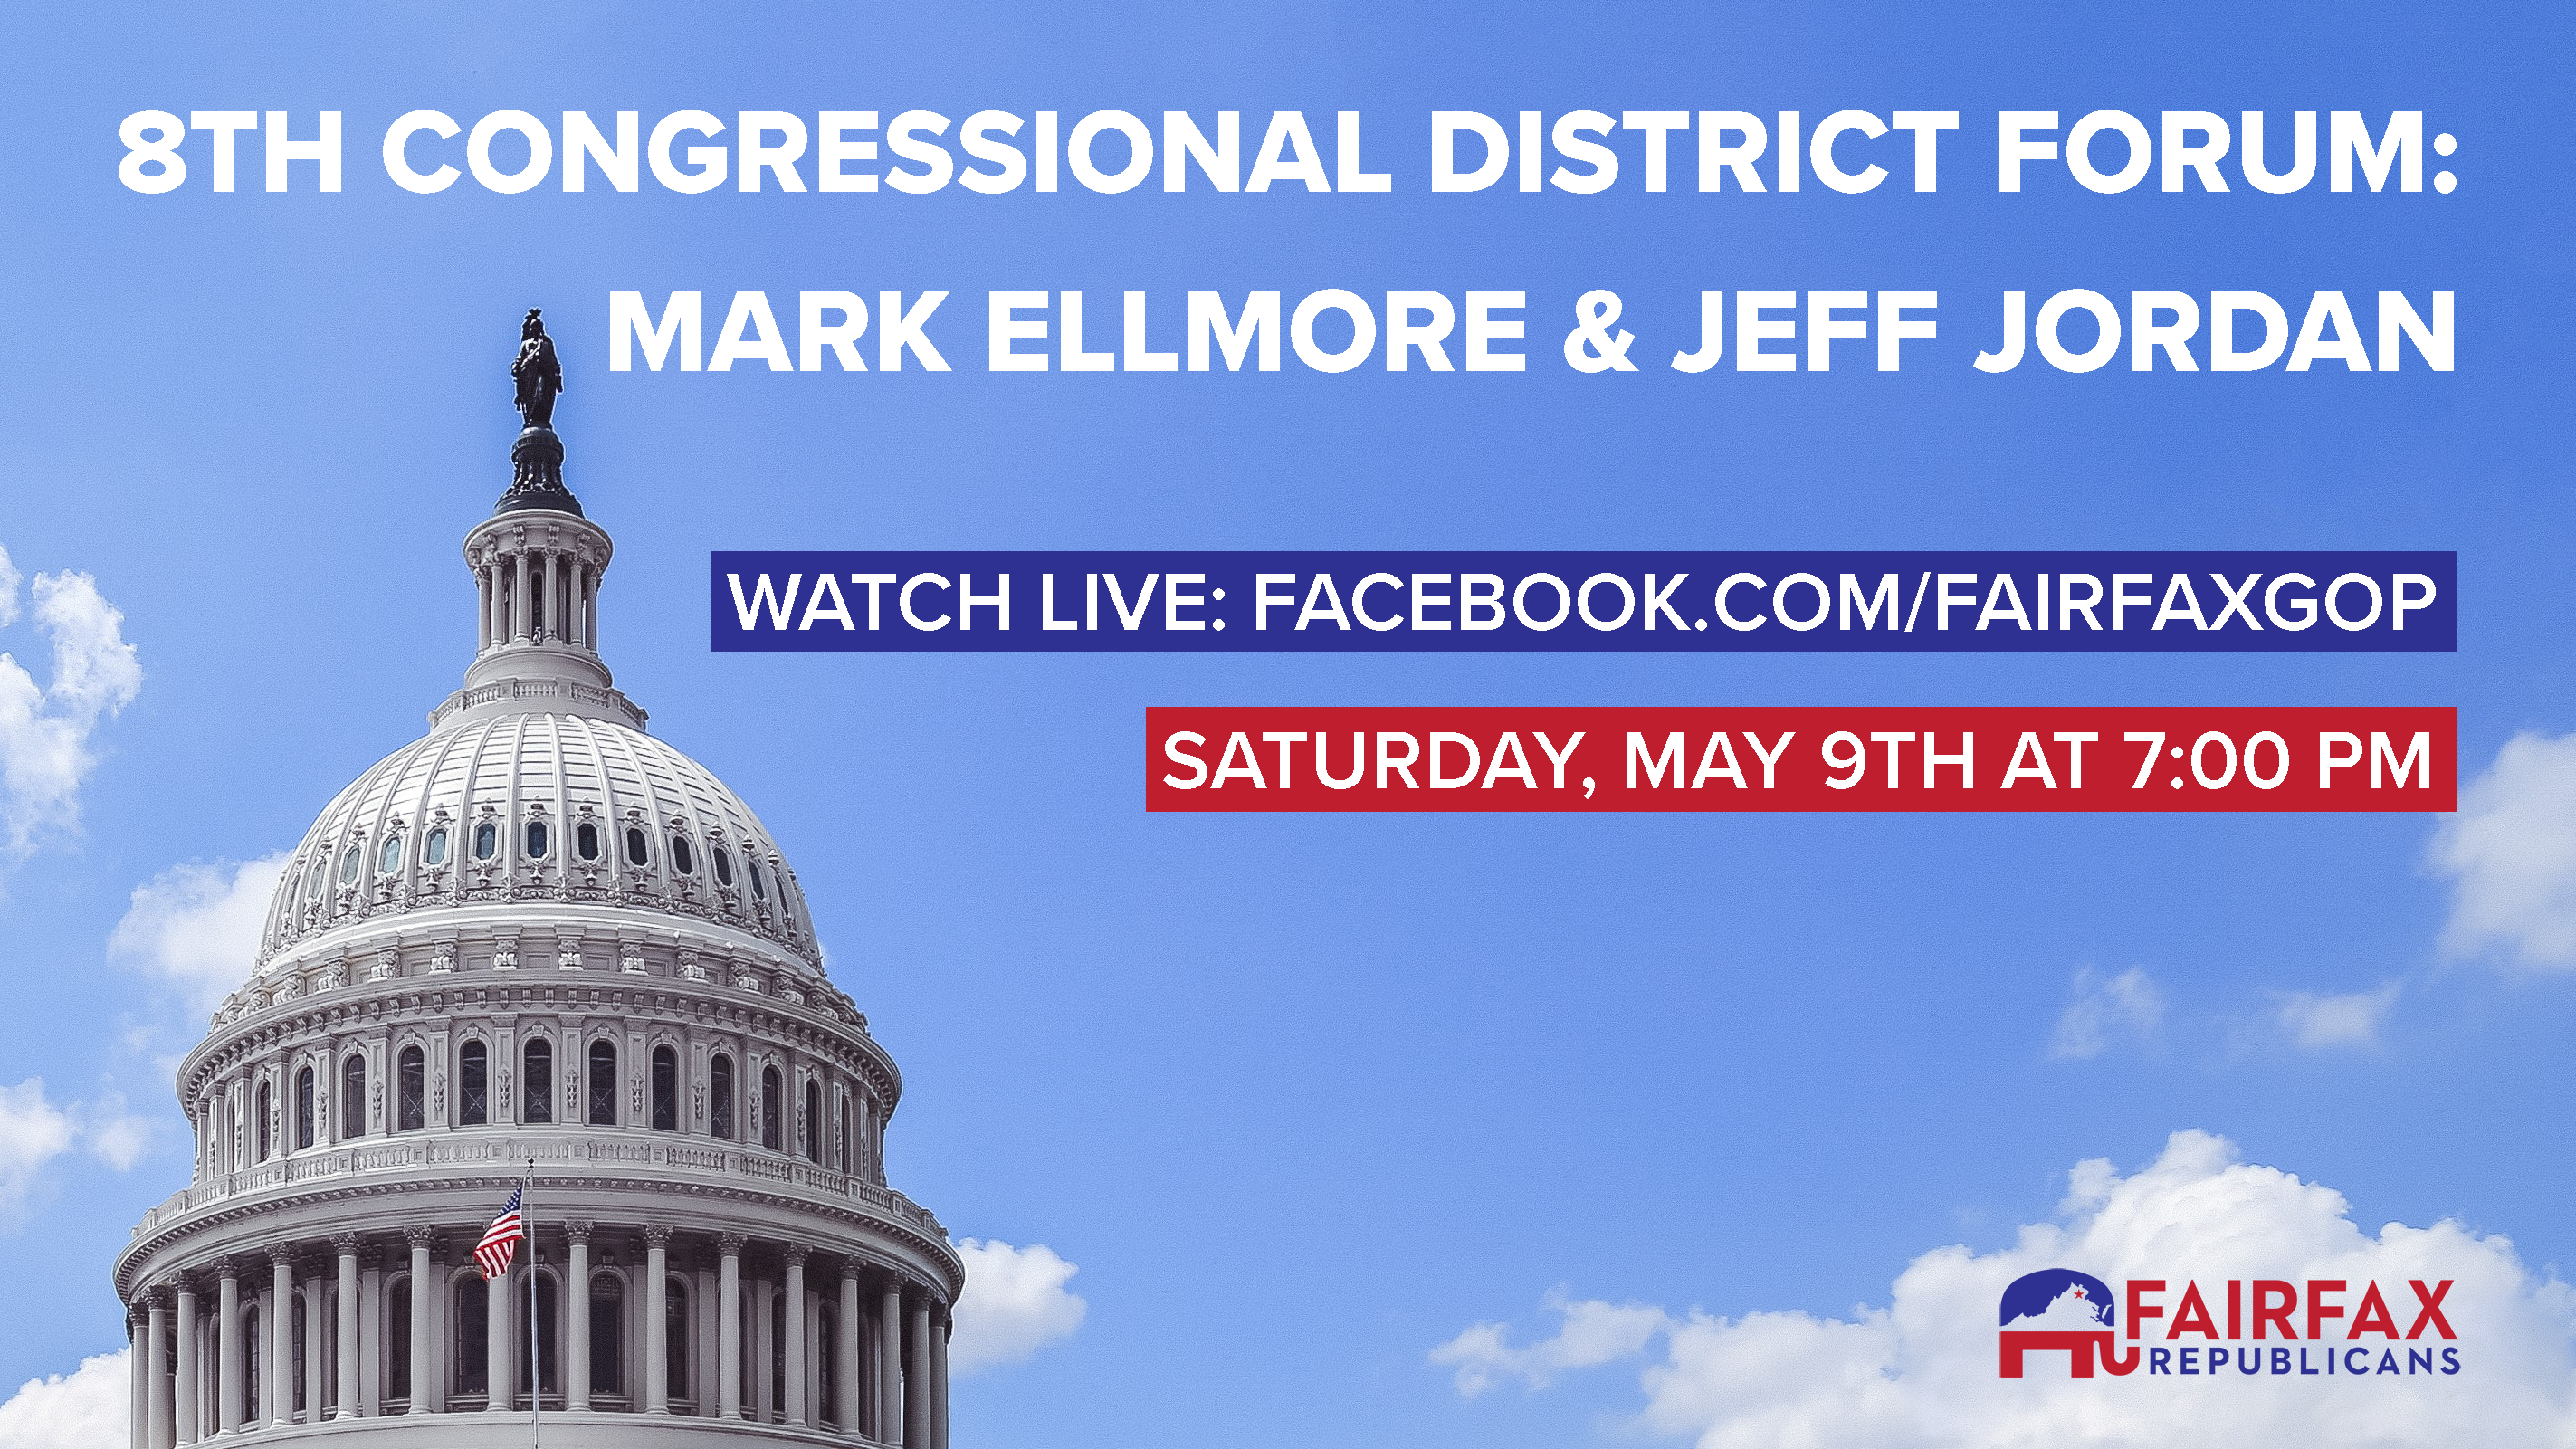 8th Congressional District Forum